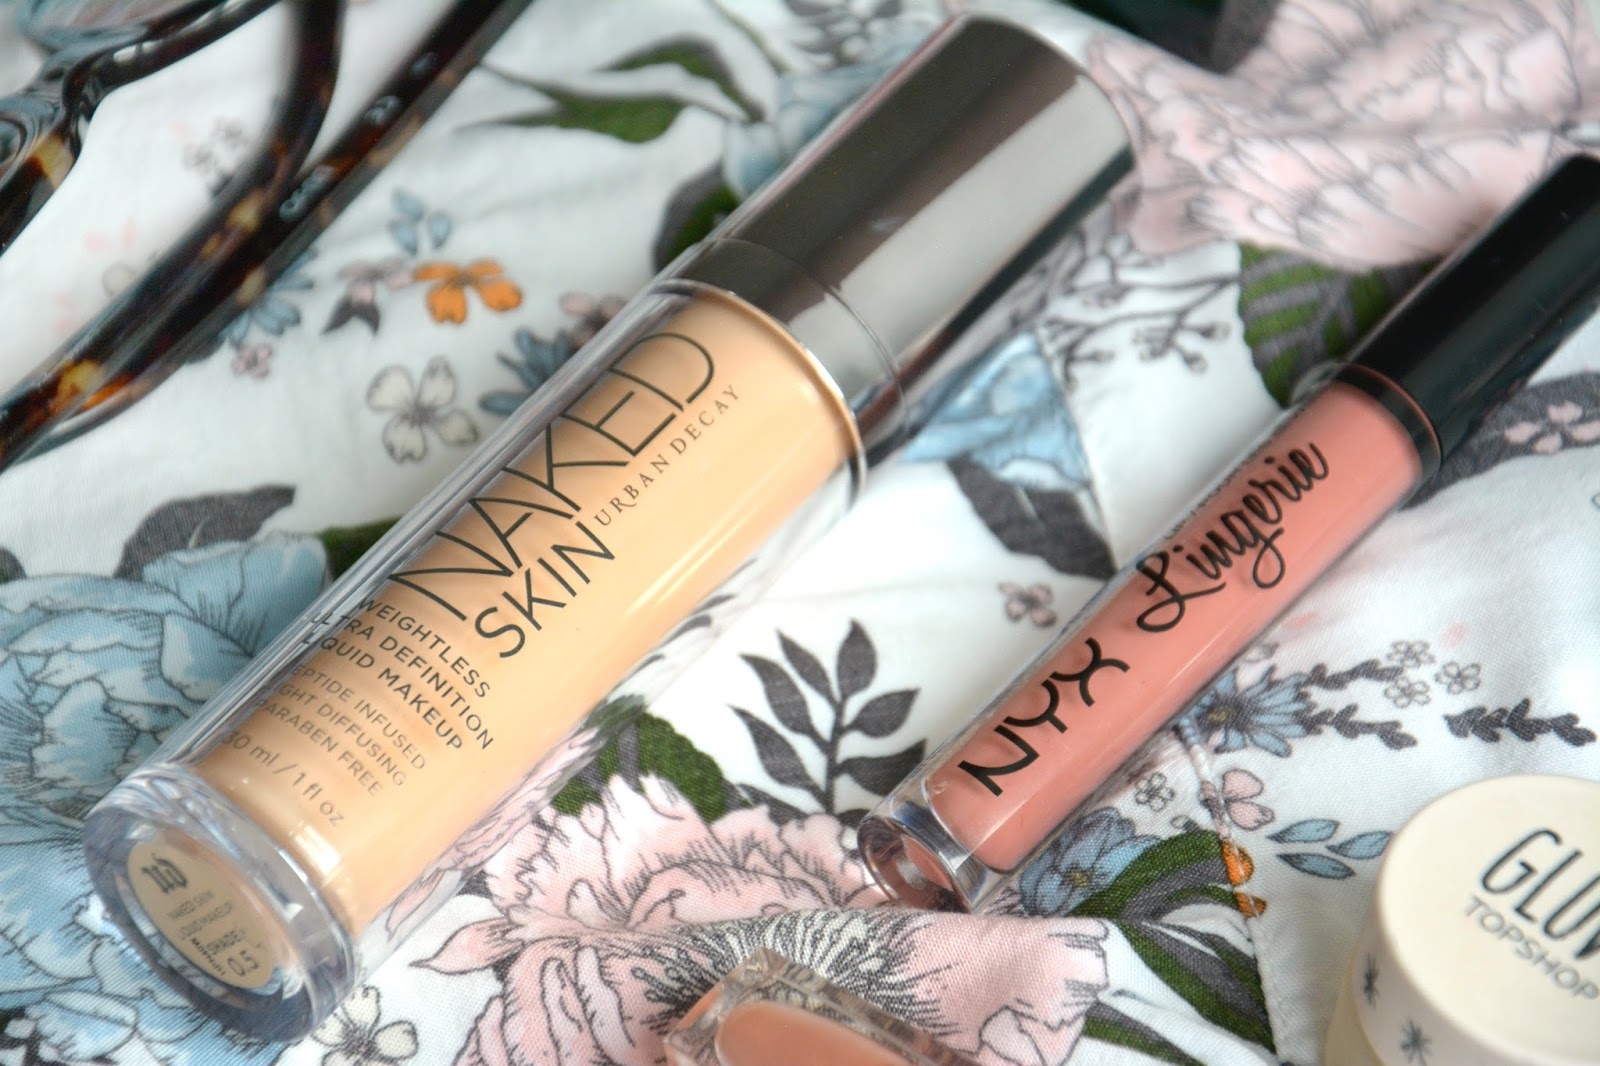 Urban Decay Naked Skin Foundation, NYX Lip Lingerie, H&M Blouse